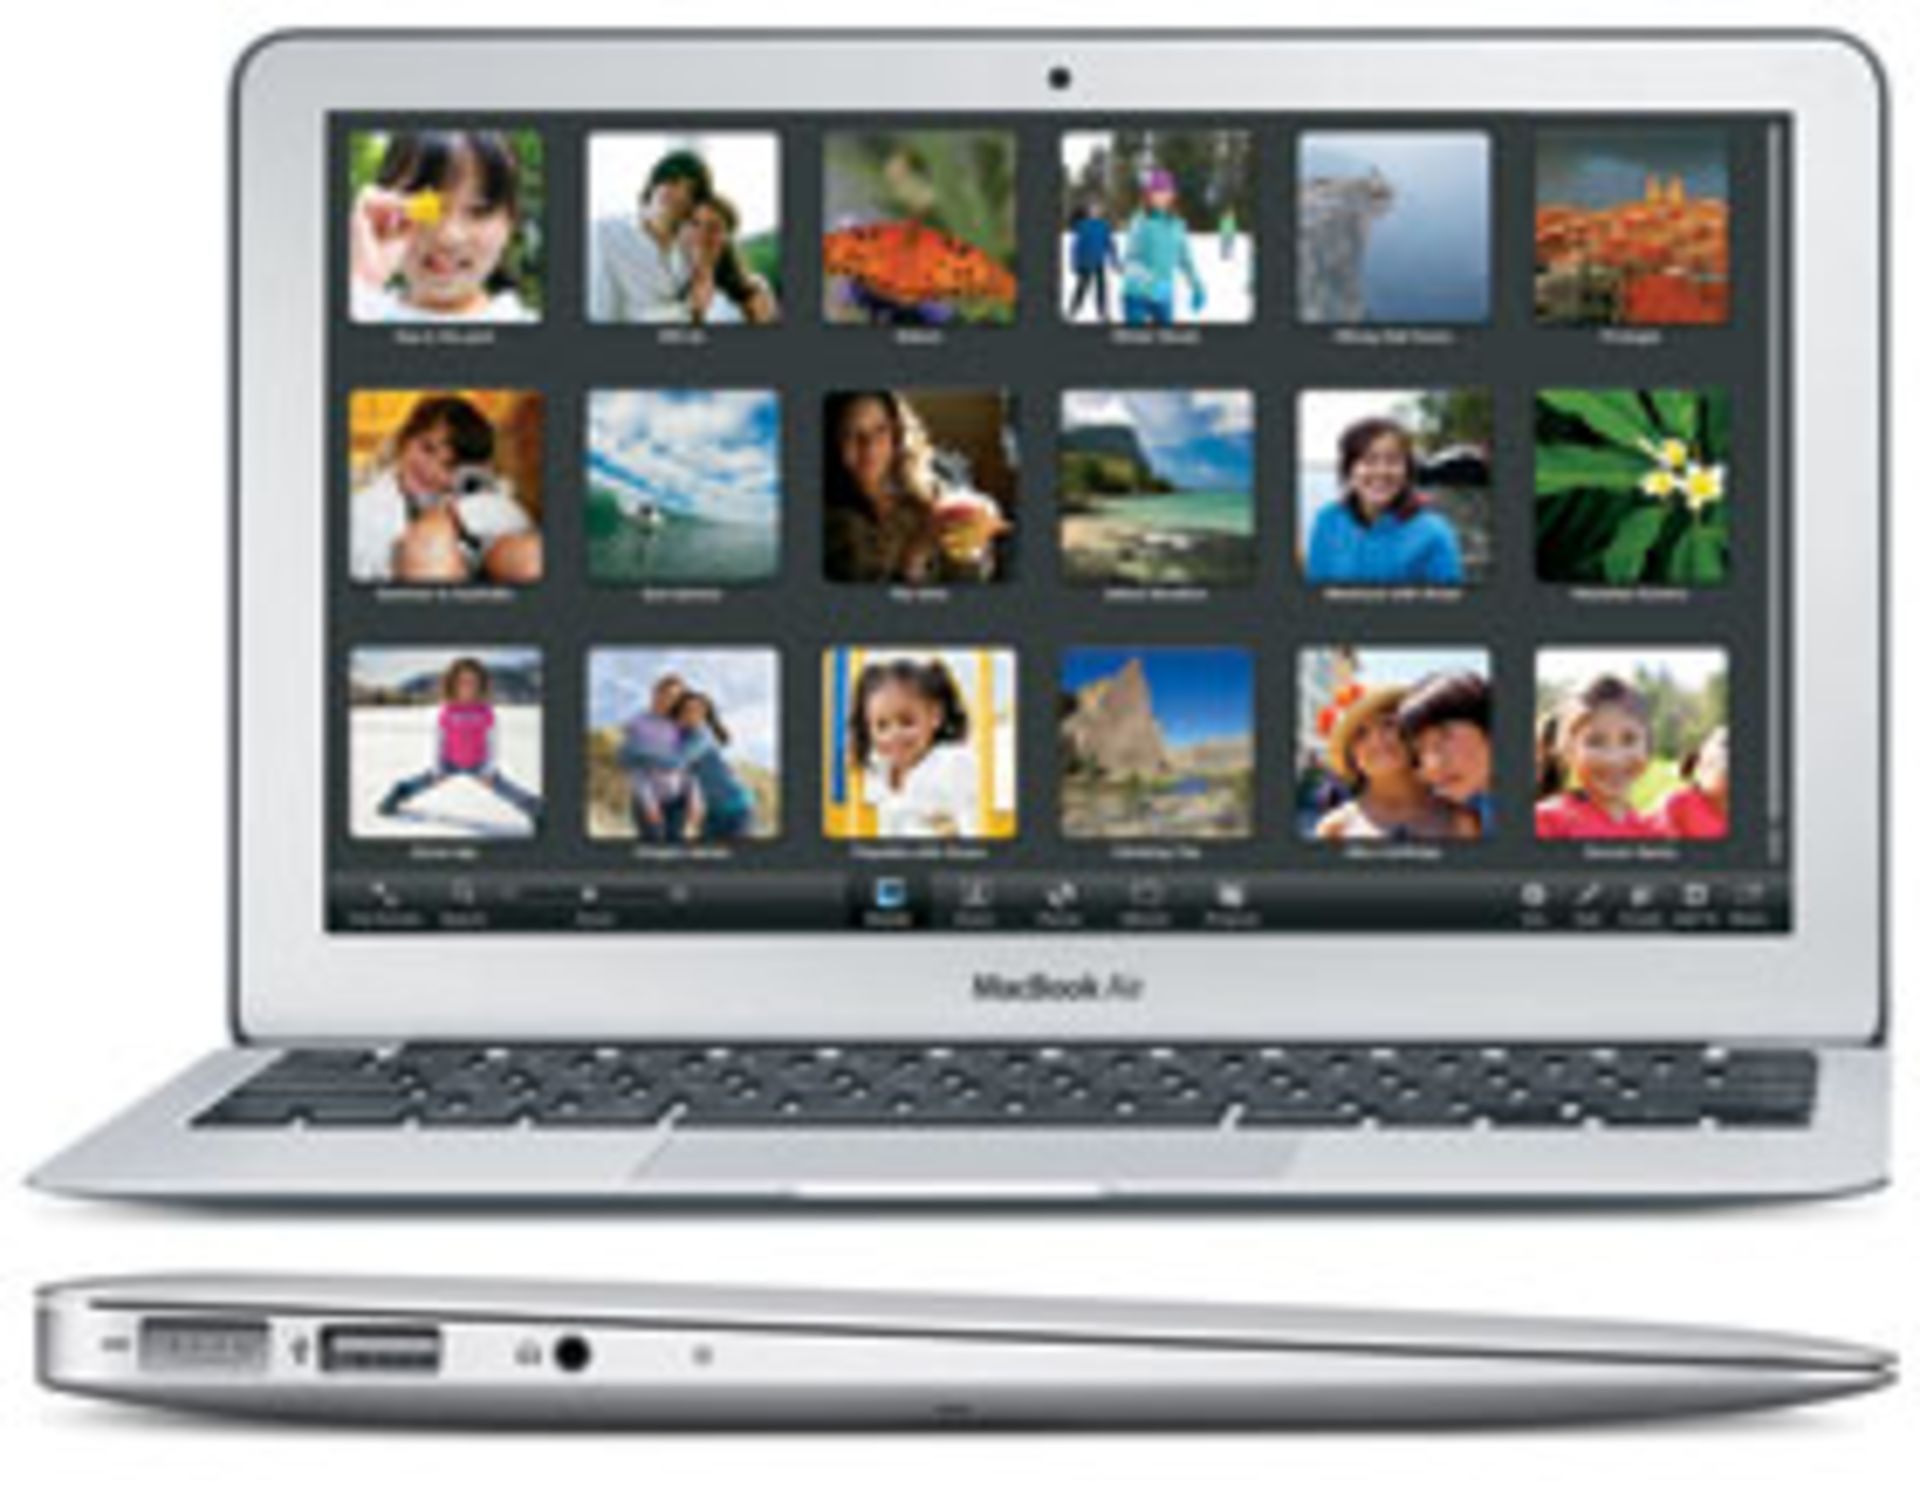 Lot 60013 - V Grade B Macbook Air 11.6 Inch Core 2 Duo - 64GB SSD - A1370 - Available Approx 7 Working Days